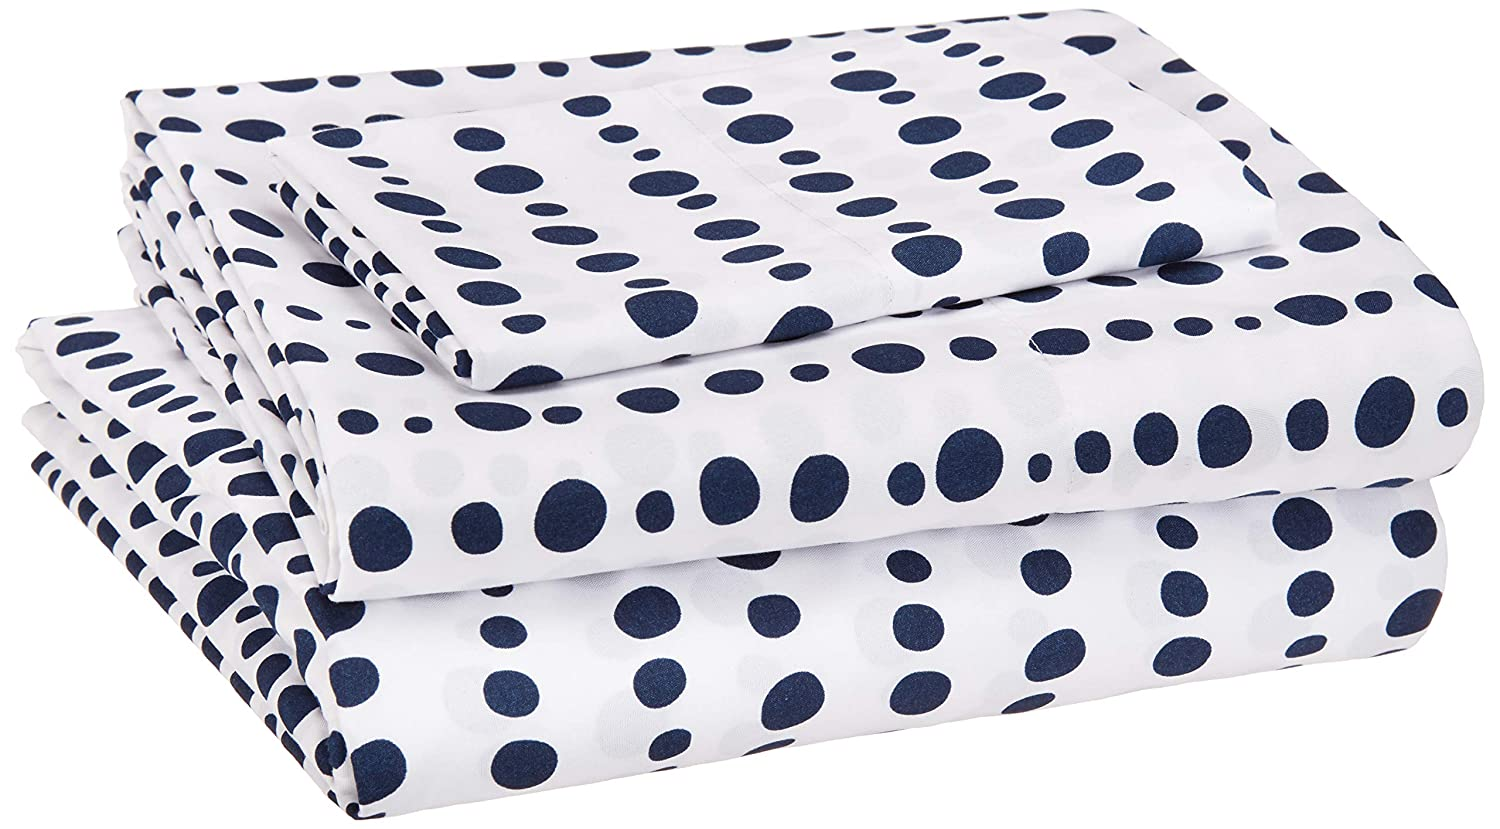 AmazonBasics Kid's Sheet Set - Soft, Easy-Wash Microfiber - Twin, Blue Dotted Stripes